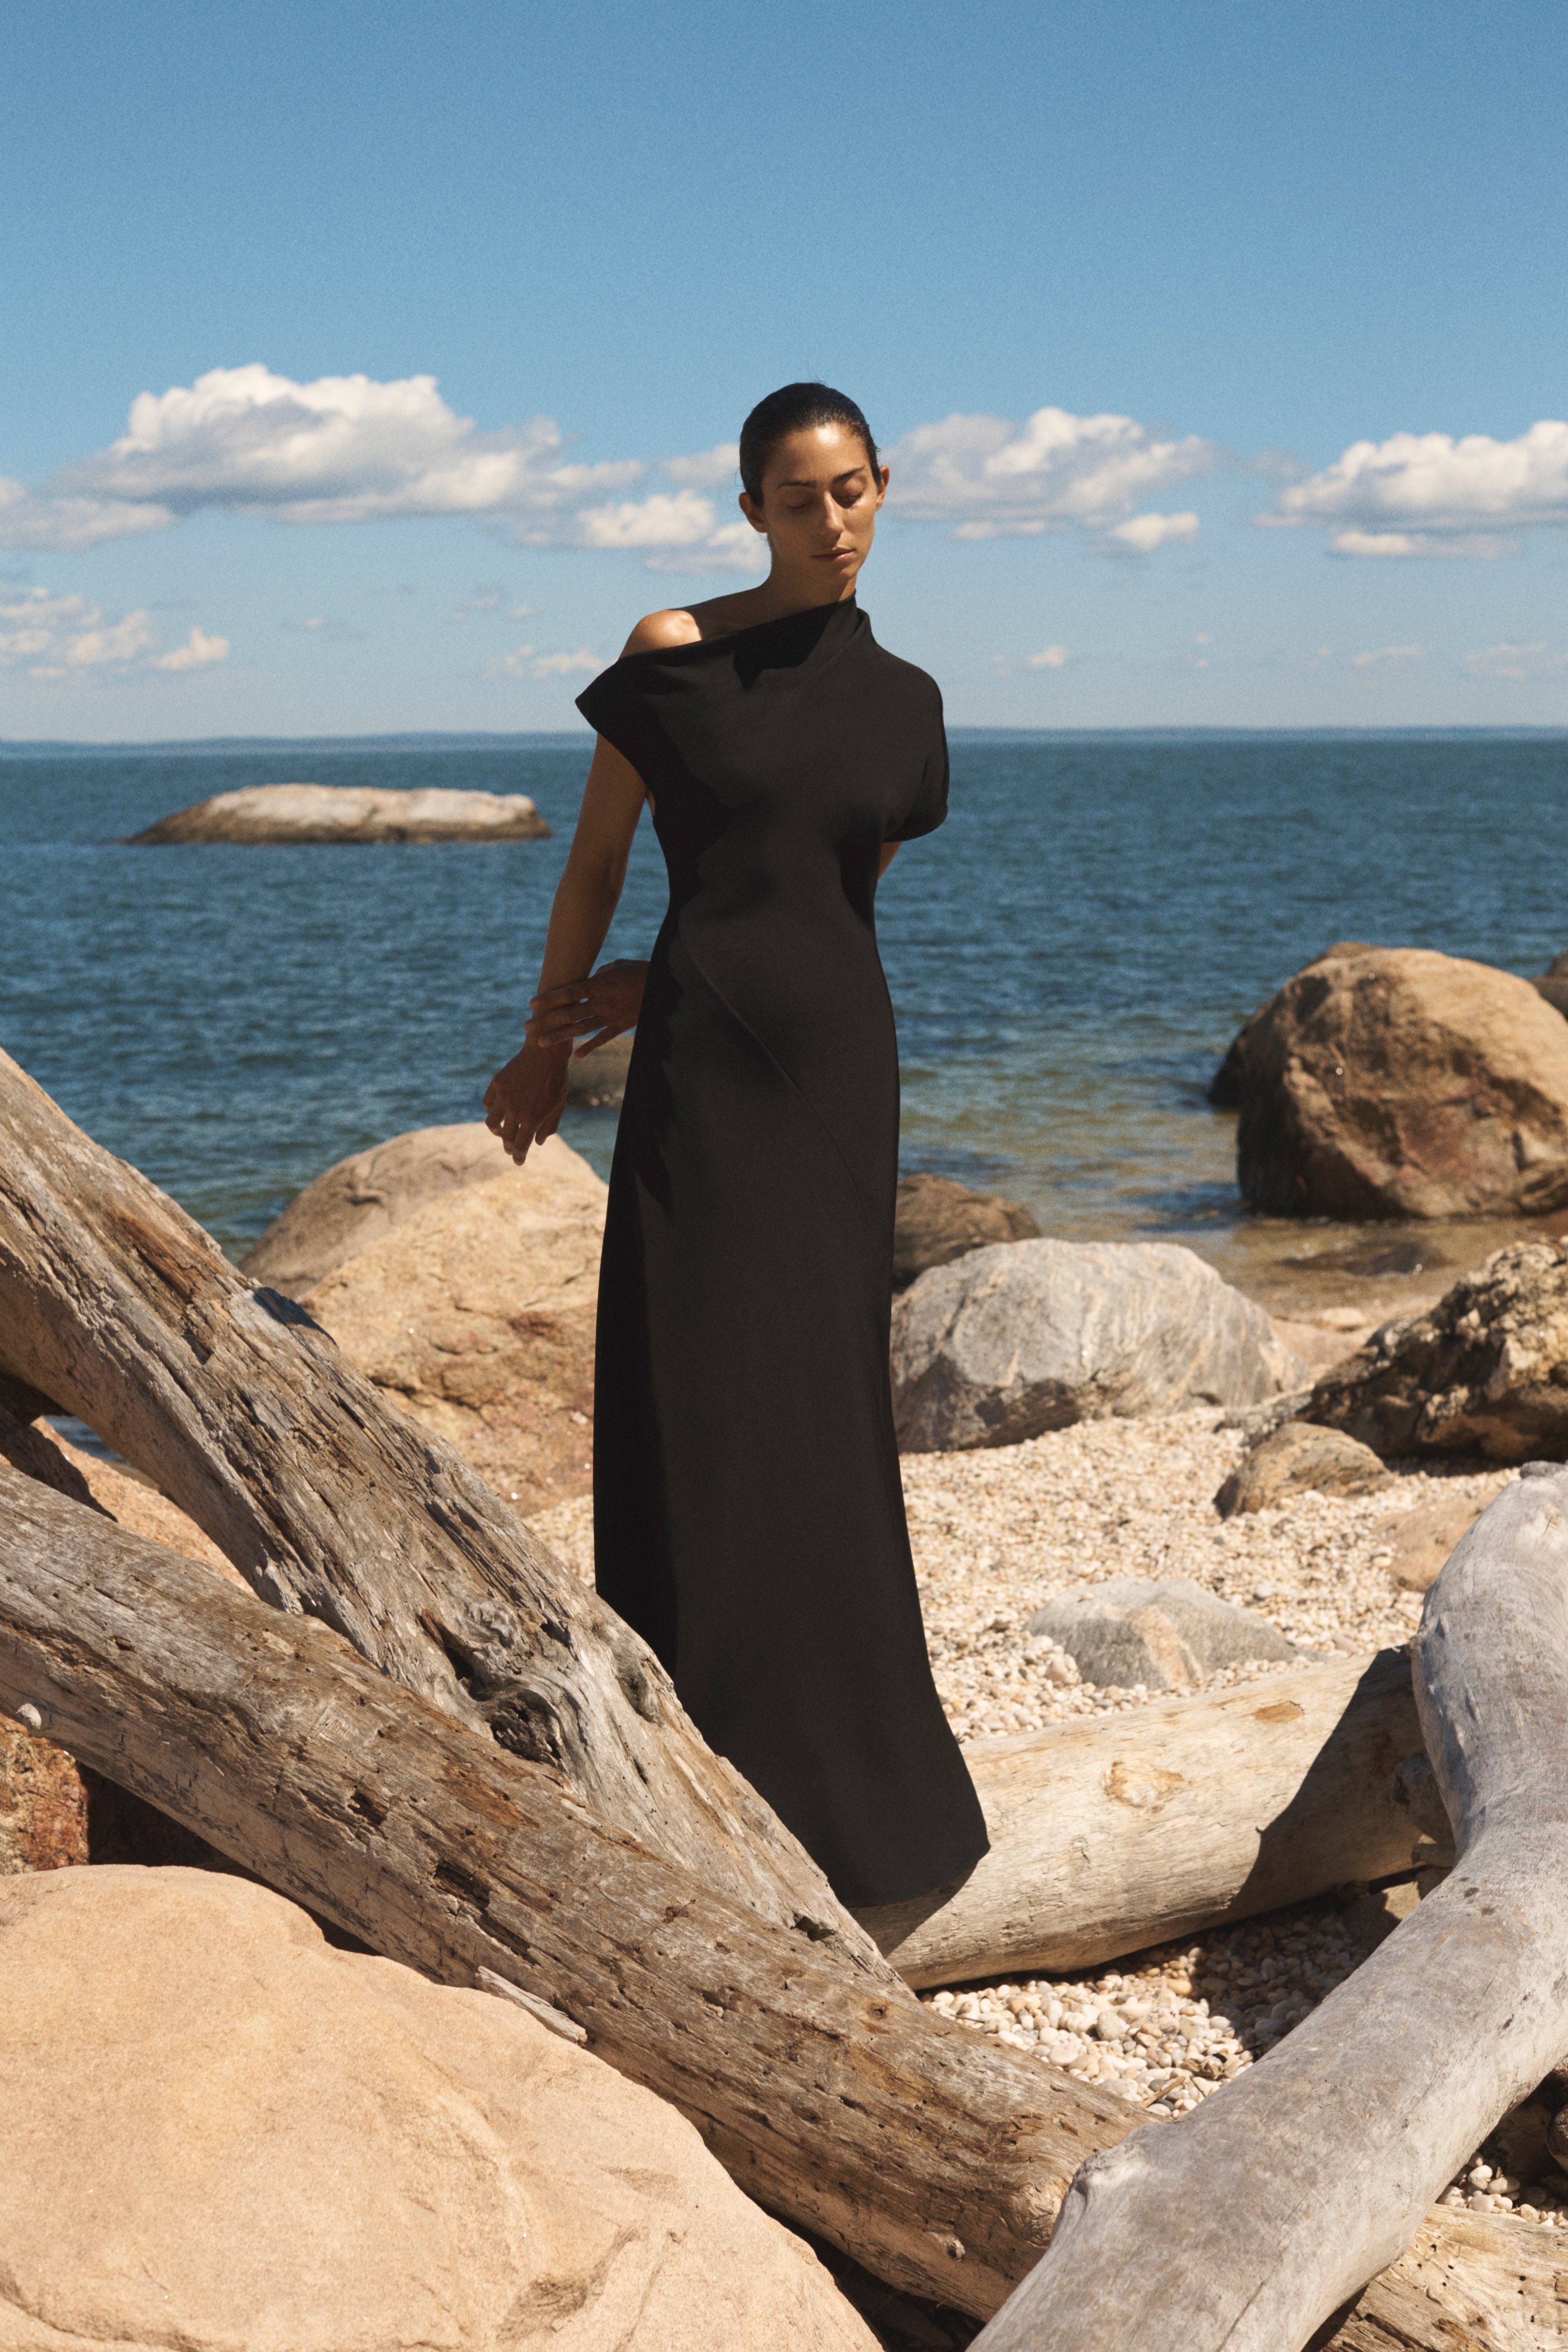 Bias Cut Gown In Viscose Twill - Black - by Zoe Gherter for Co